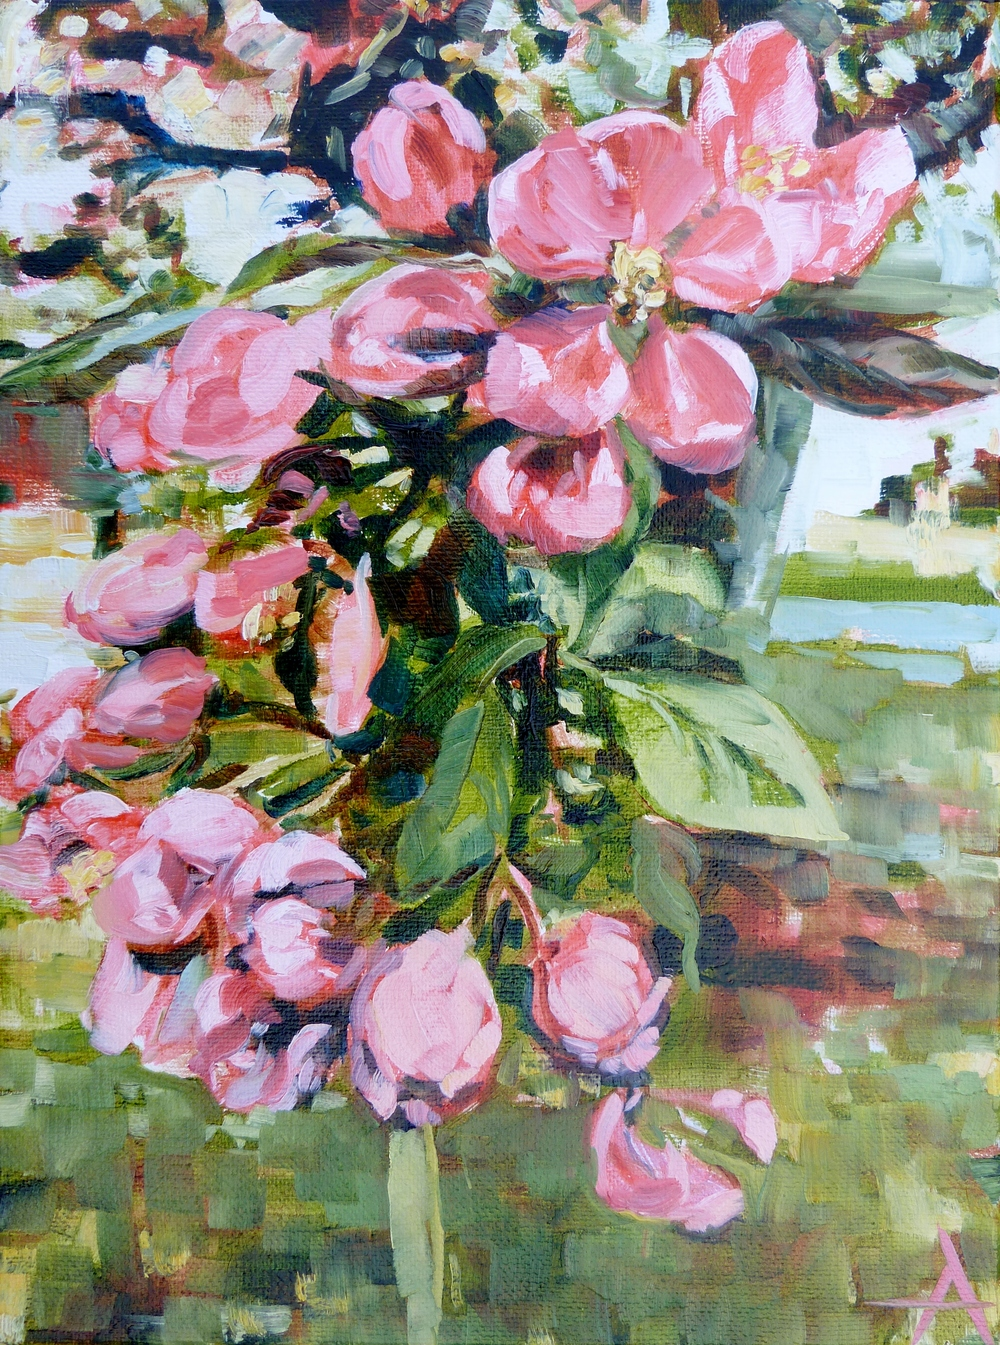 "SOLD, Waiting for Cherry Blossoms, Copyright 2014 Hirschten, Oil on Canvas, 9"" x 12"""